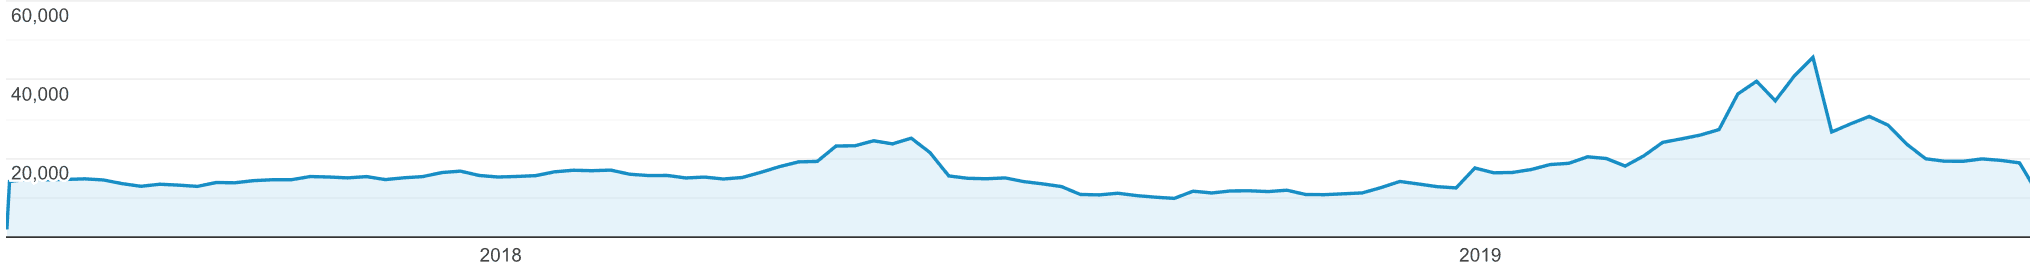 pageviews by week